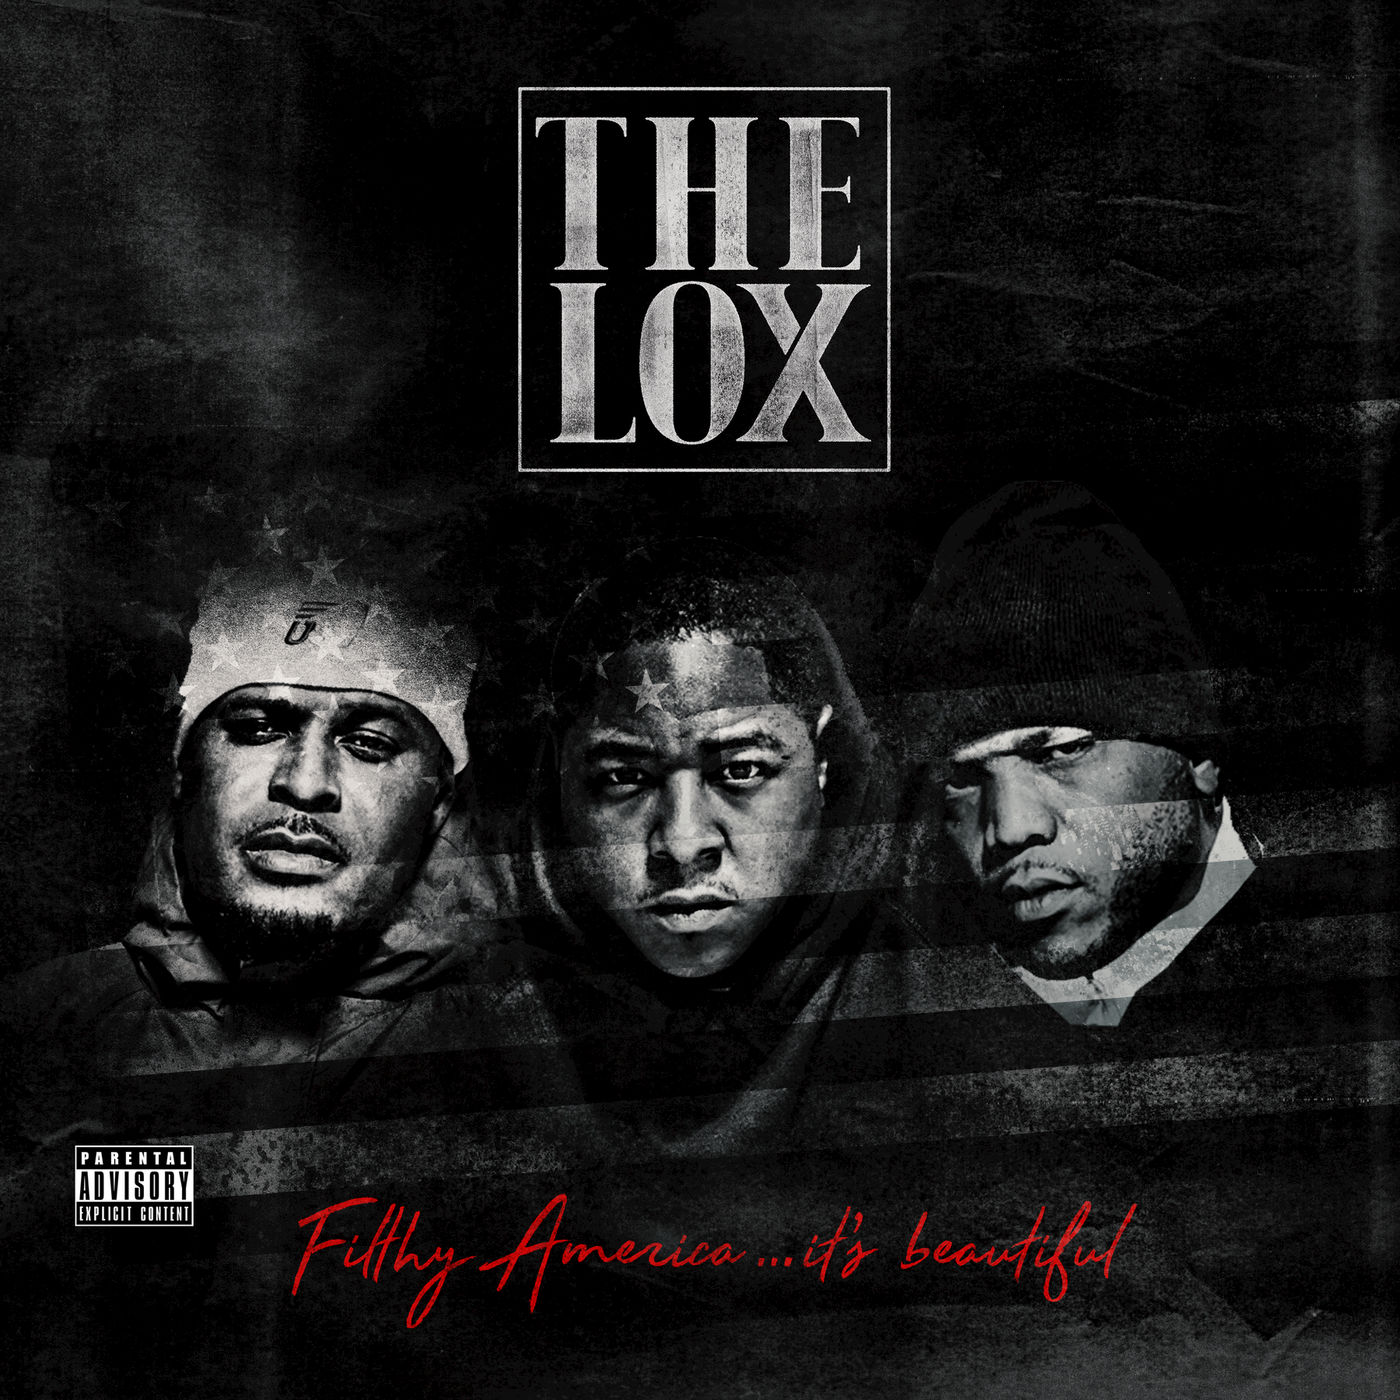 The Lox - Secure the Bag (feat. Gucci Mane & Infa-Red) - Single Cover